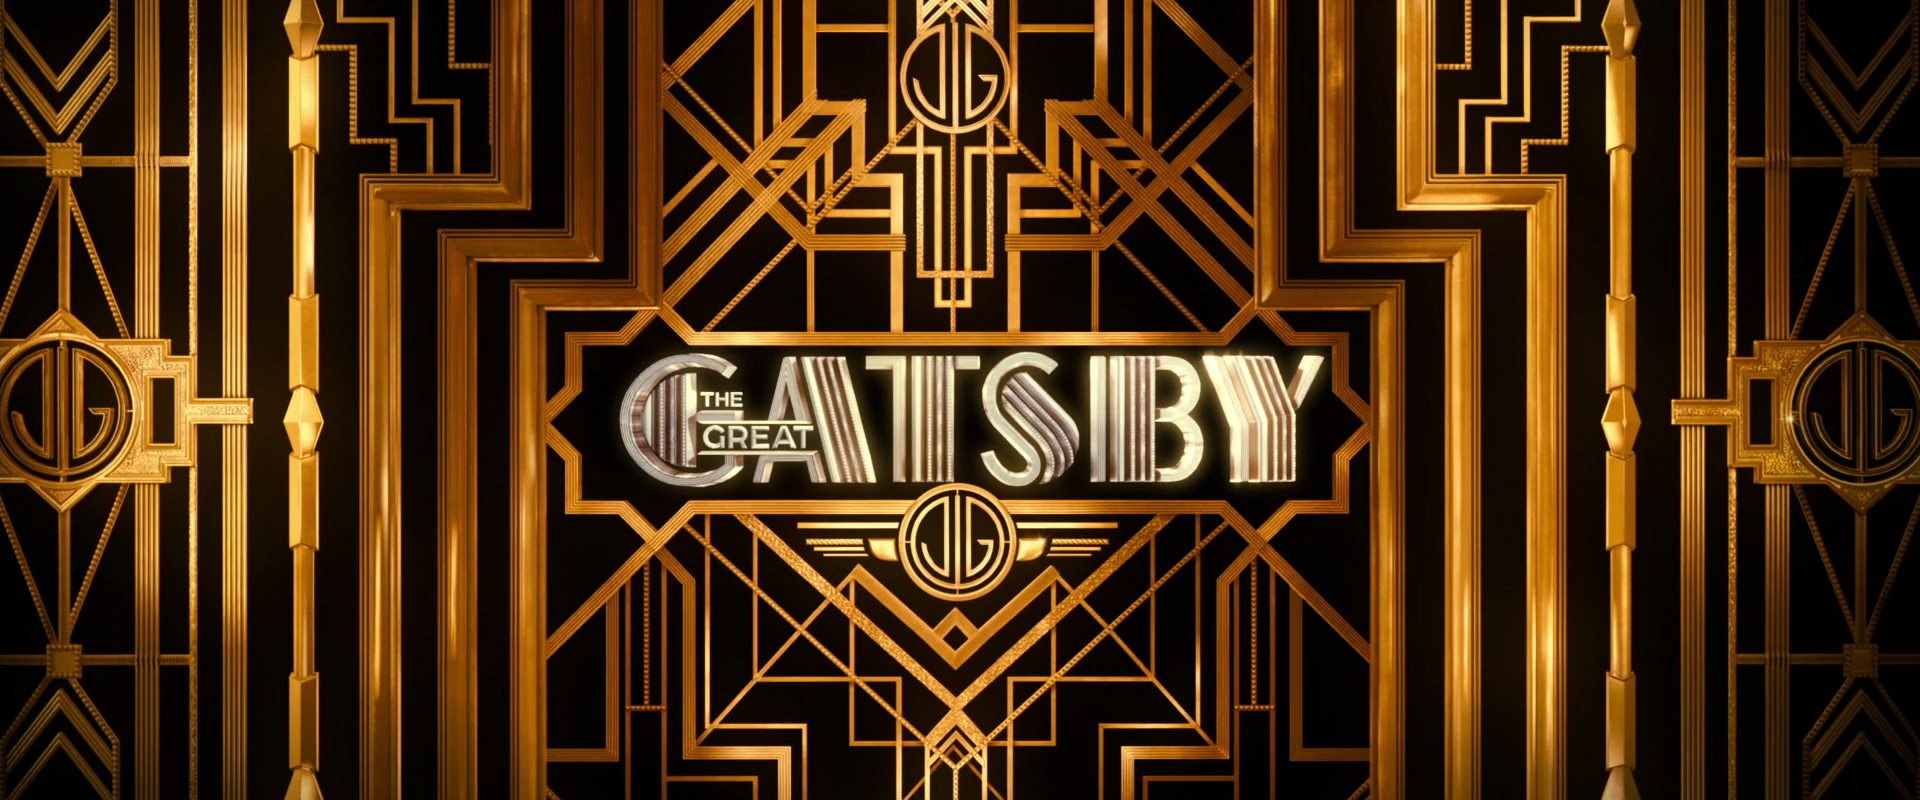 """an analysis of the 1920s in the great gatsby in the film adaptation and novel by f scott fitzgerald Sure, i knew that f scott fitzgerald had an up-and-down career and a bad  drinking  at a precocious age, with his 1920 novel """"this side of paradise  in  1949, hollywood produced a version of """"gatsby"""" with alan ladd in the title role   of """"tender is the night"""" and fitzgerald's analysis of his own failings."""